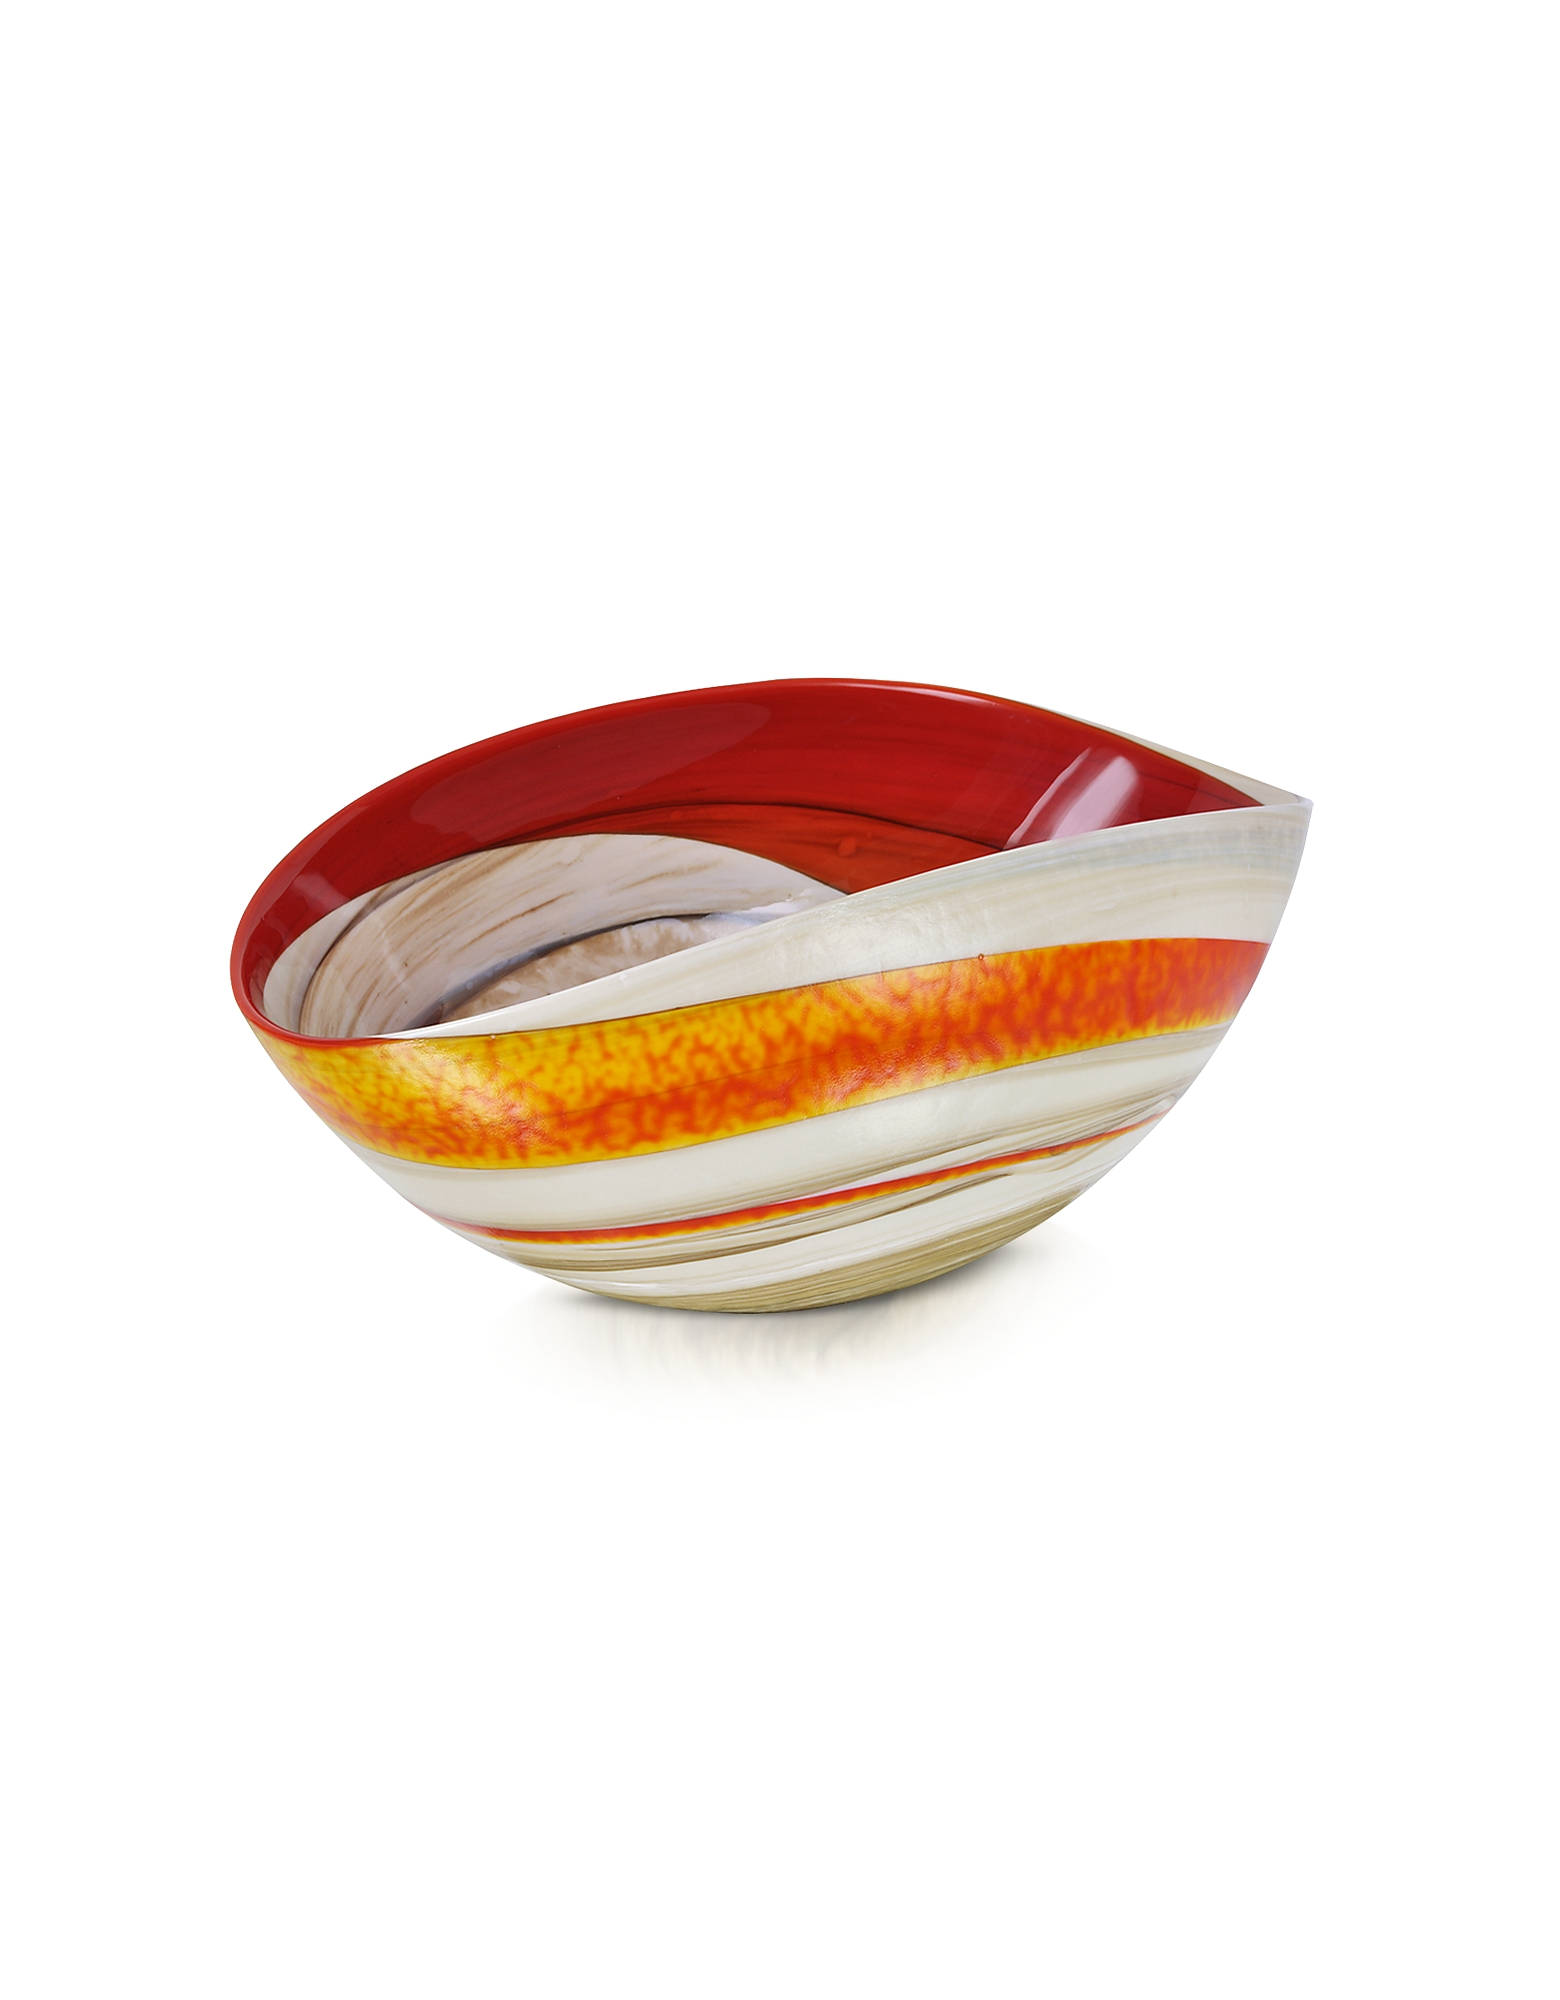 Cartoccio - Small Red and Ivory Marbled Murano Glass Folded Bowl